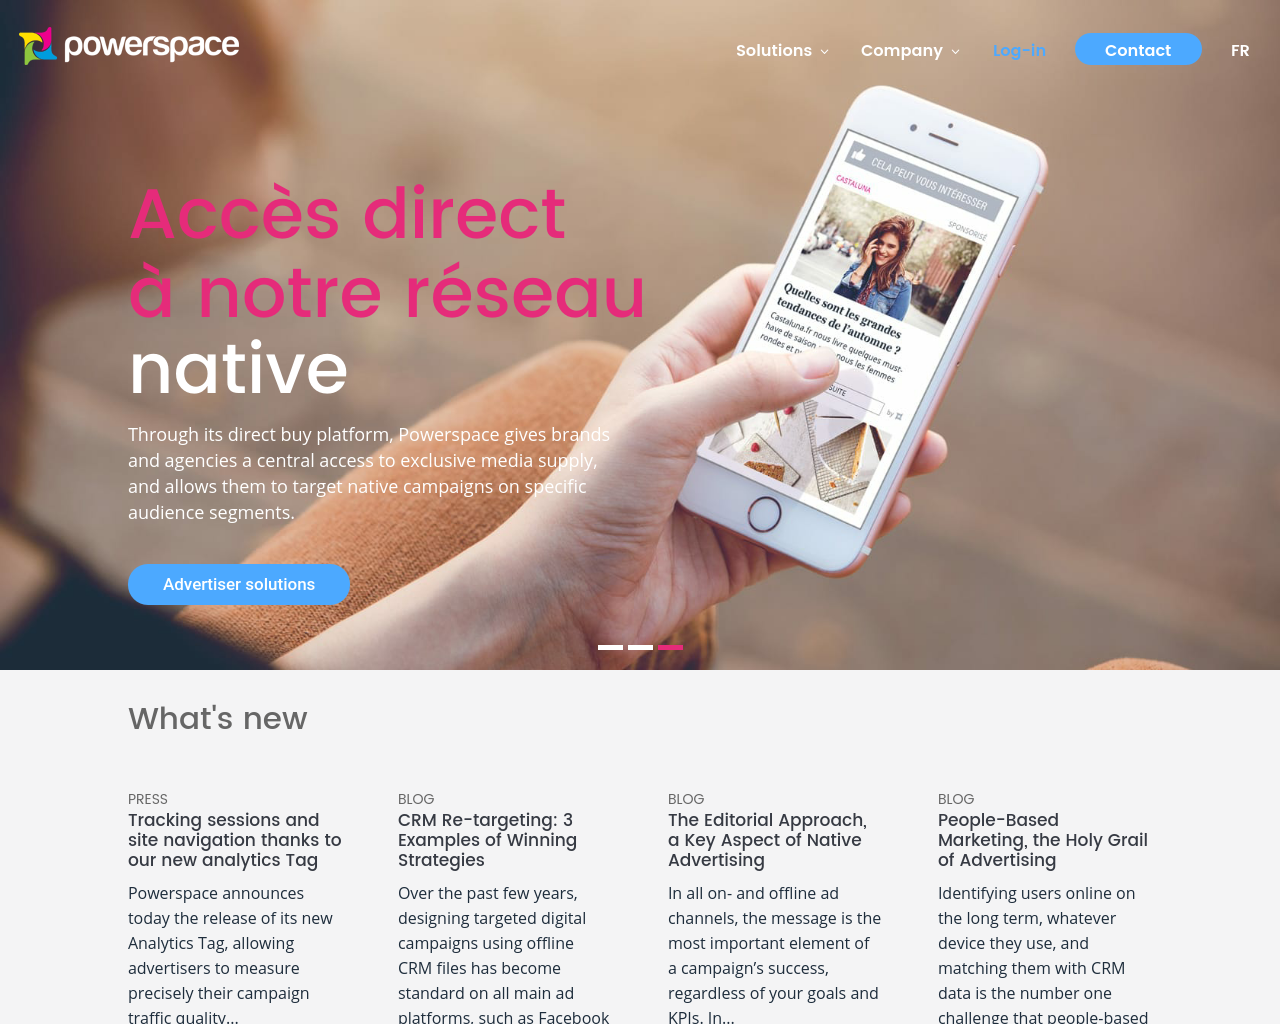 Powerspace-Ads-Advertising-Reviews-Pricing